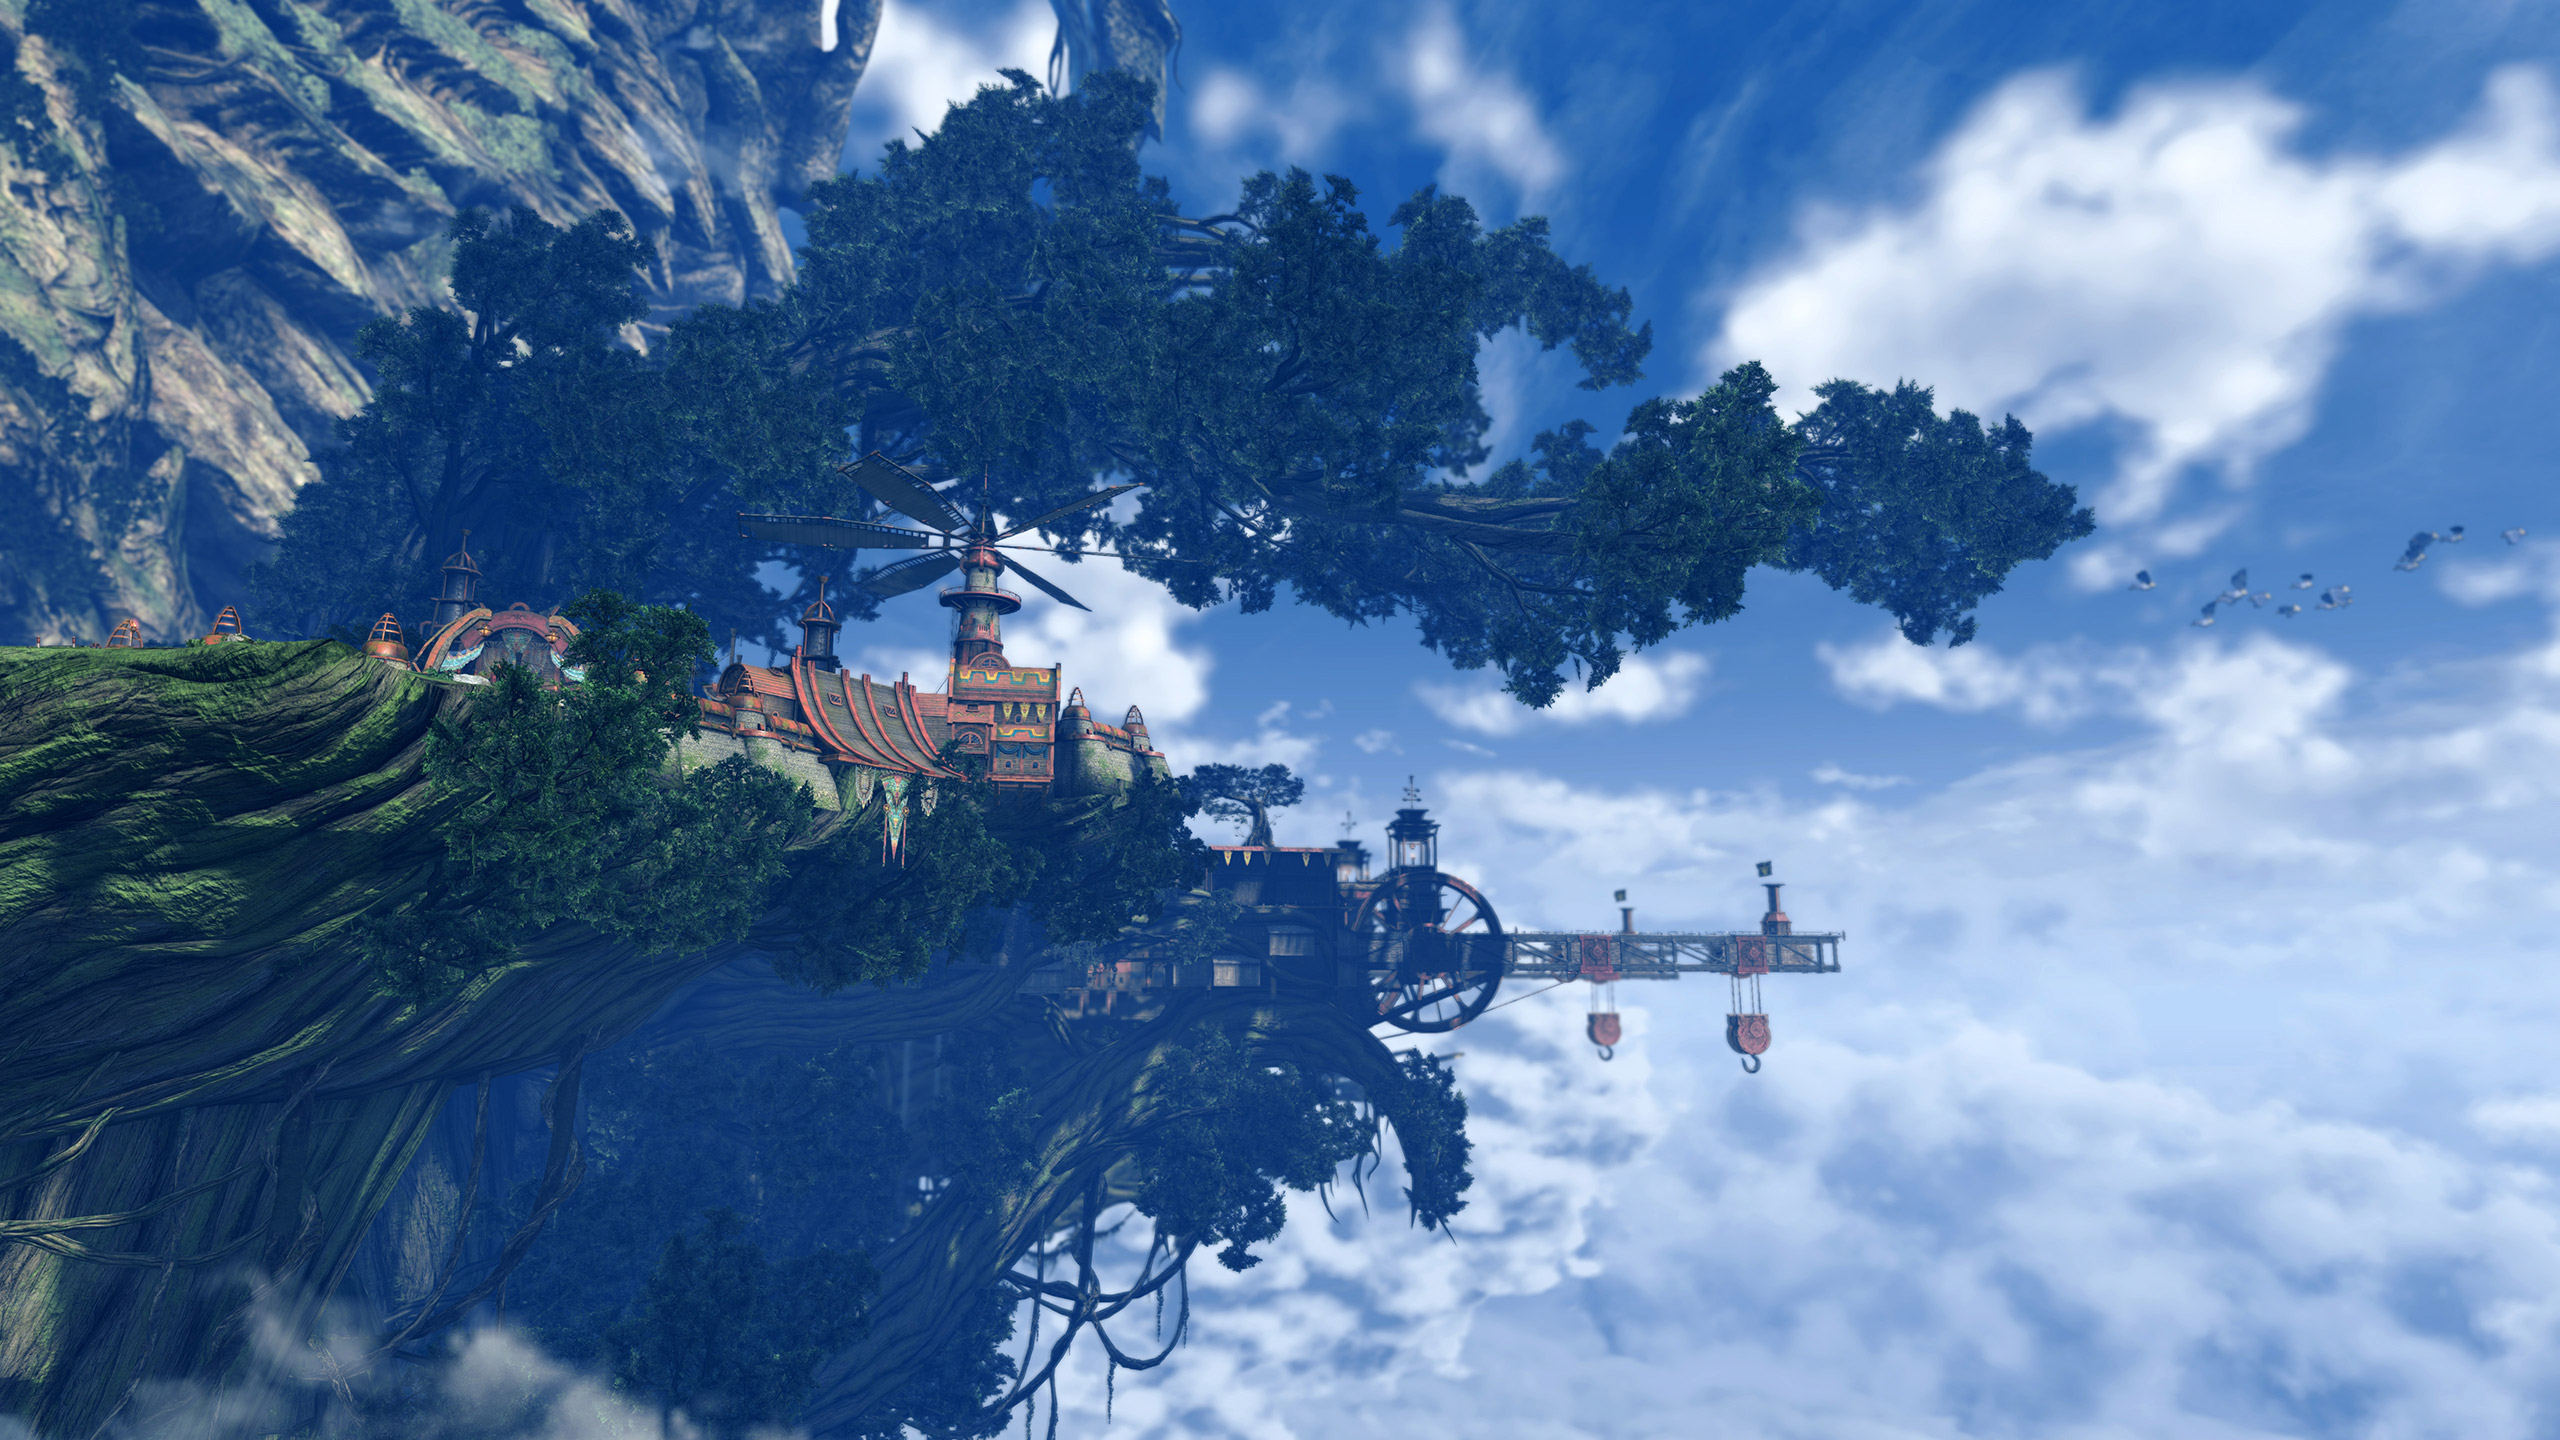 Some red-roofed buildings sit percariously under a tree high on a cliff. A crane reaches out from the building into the cloud